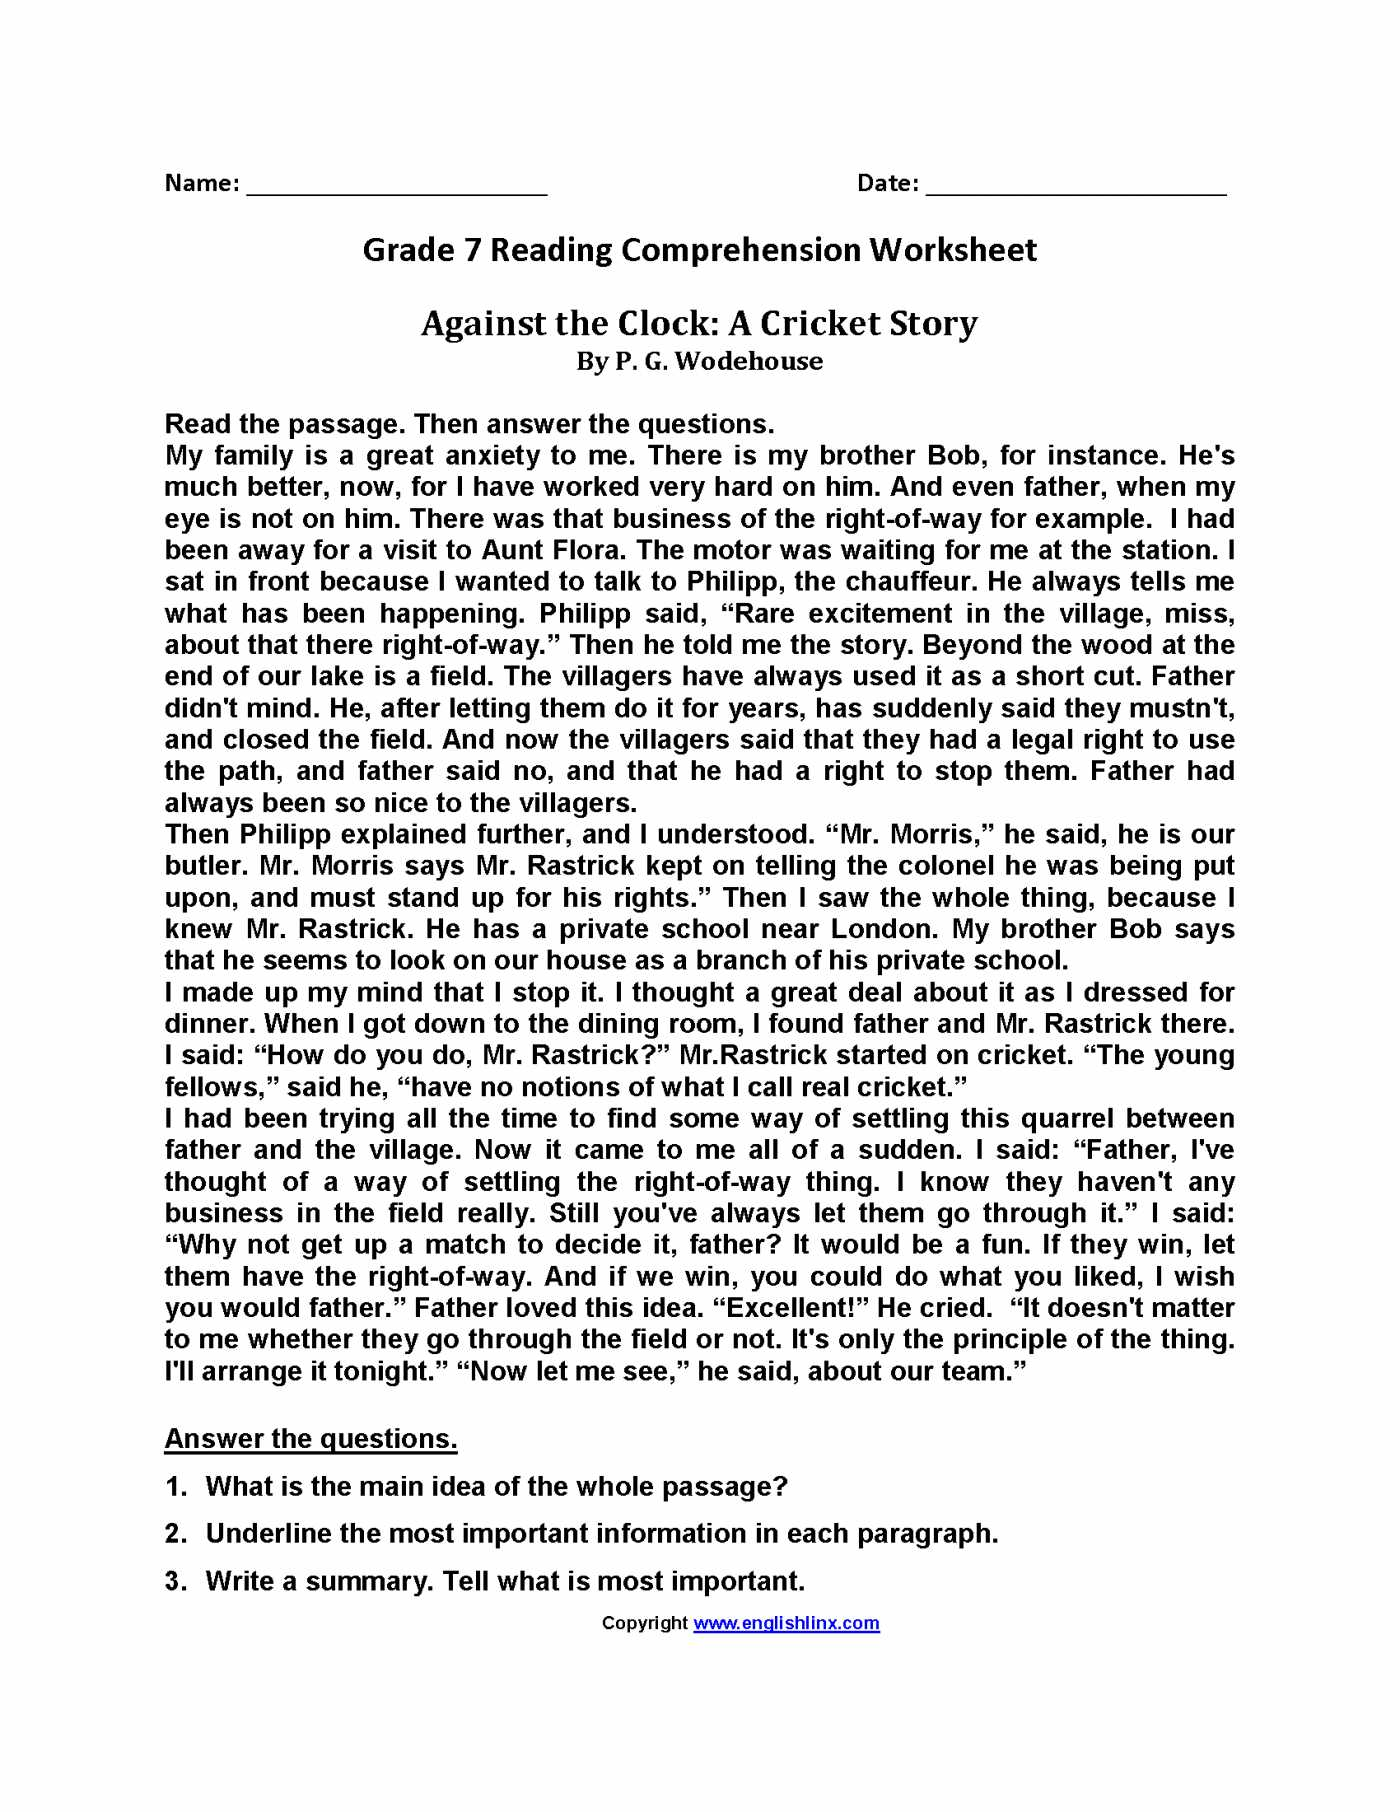 4th Grade Reading Comprehension Worksheets Multiple Choice as Well as Reading Prehension Worksheets for 5thrade Multiple Choice